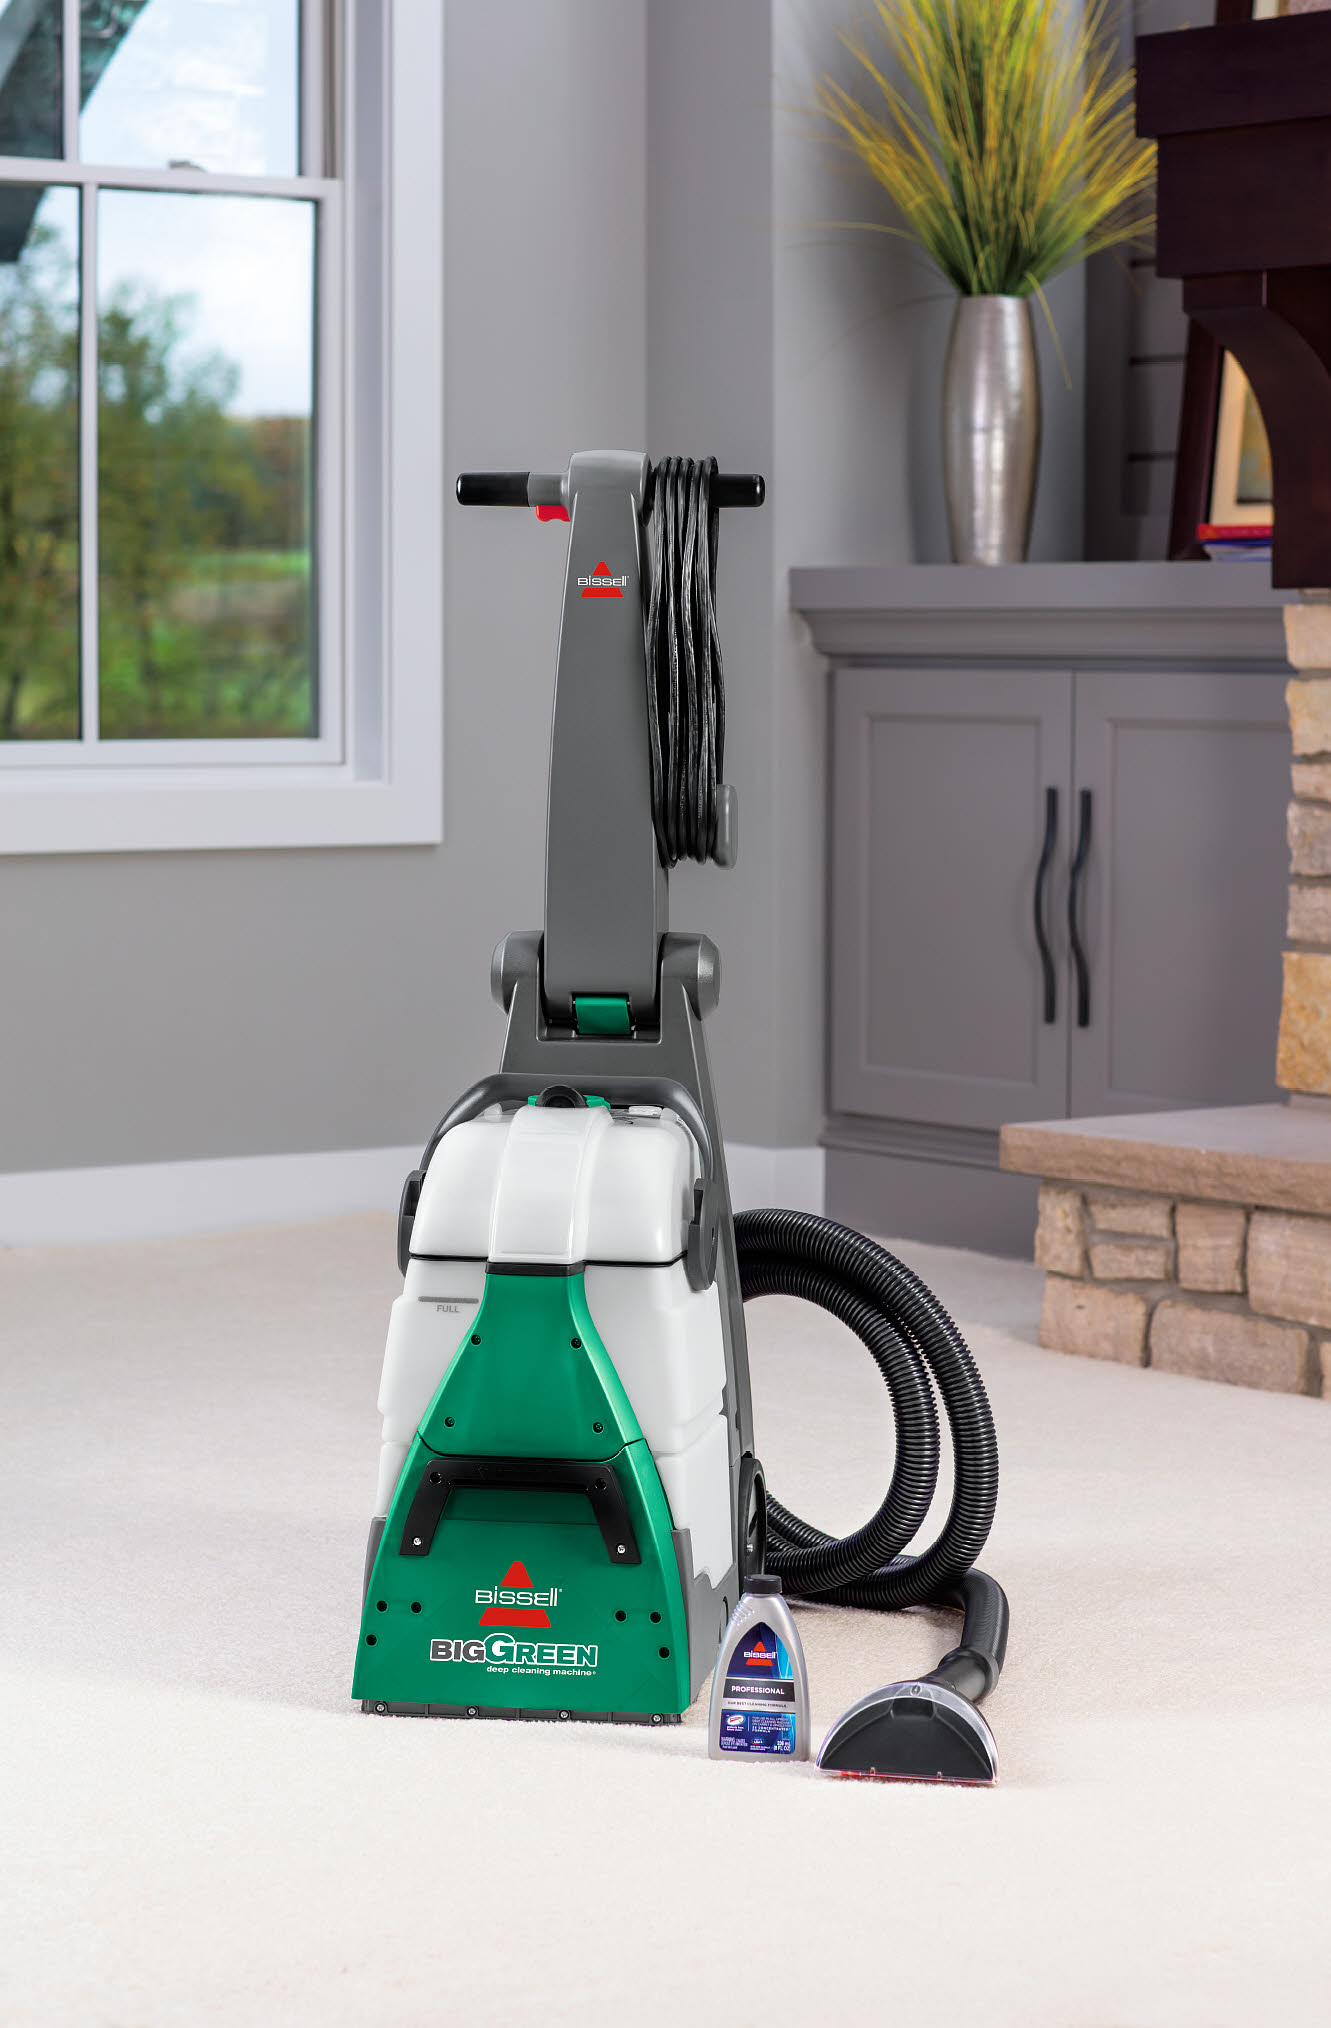 Details About Bissell Big Green Machine Professional Carpet Cleaner 86t3 Cleaning Stairs New